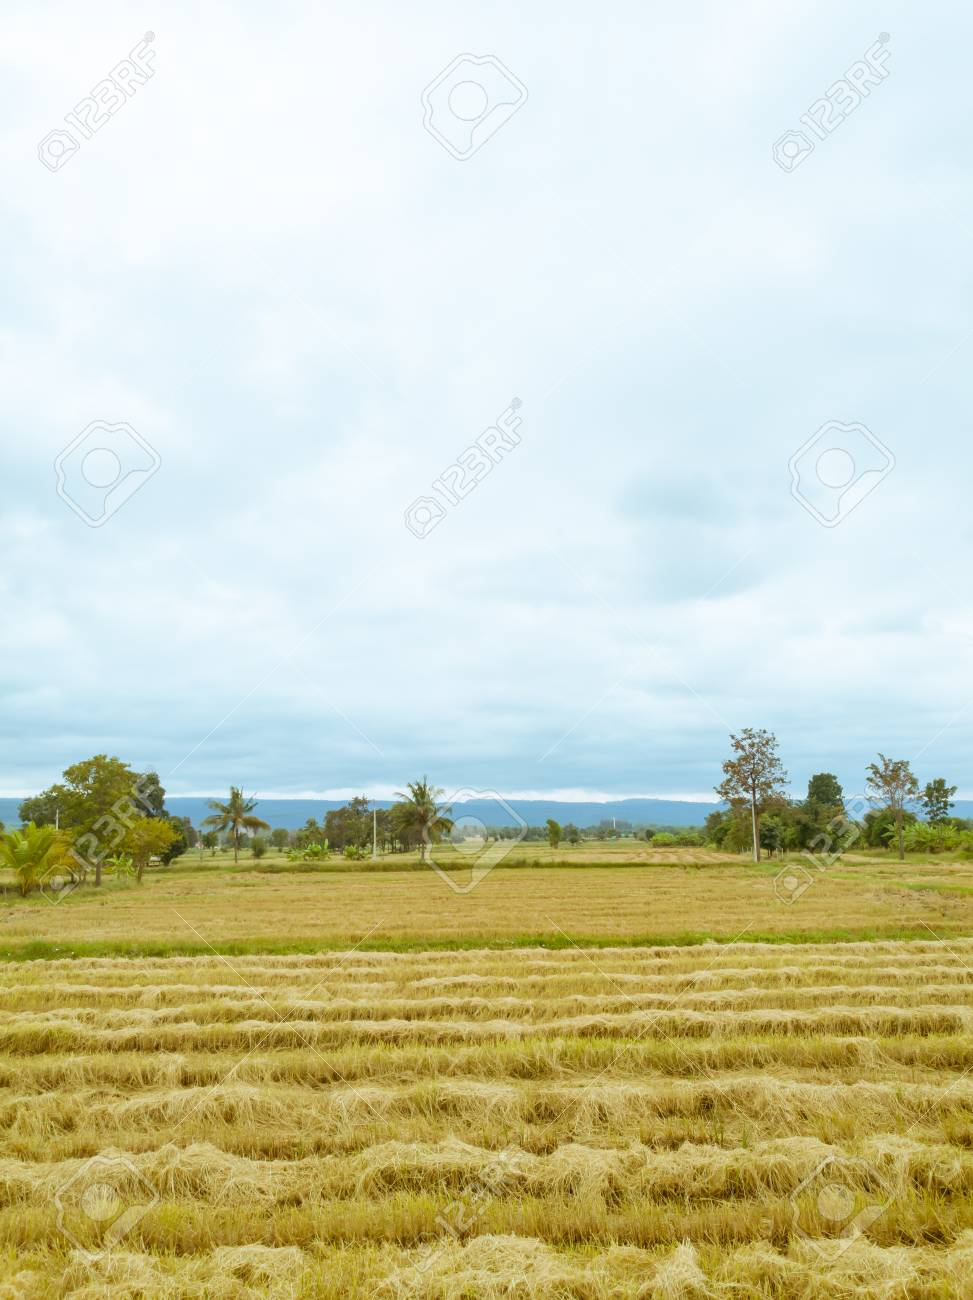 Rice paddy field after harvest season in Thailand against cloudy blue sky - 106236380